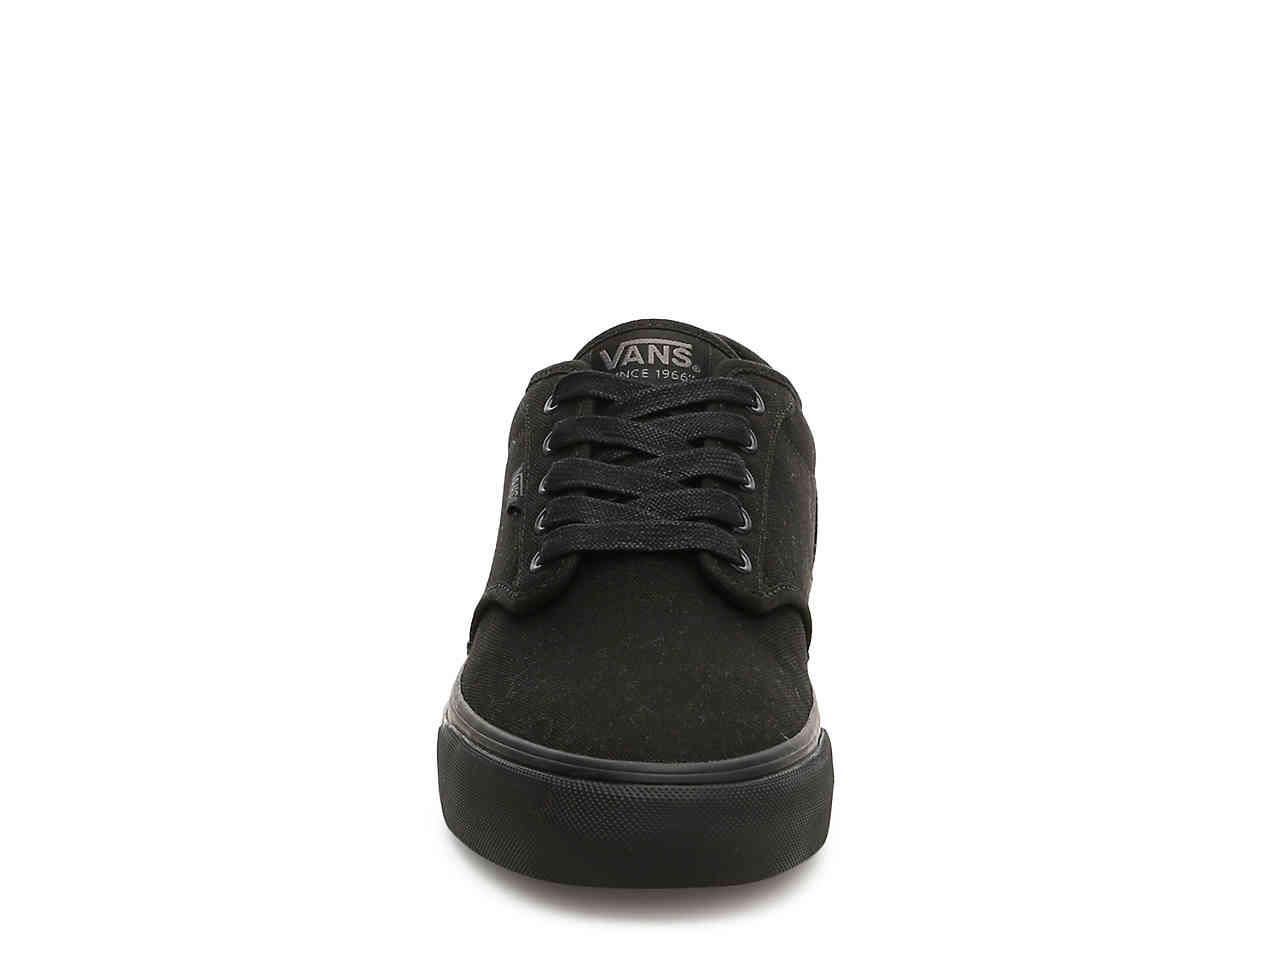 Lyst - Vans Atwood Deluxe Sneaker in Black for Men 05a2542d6